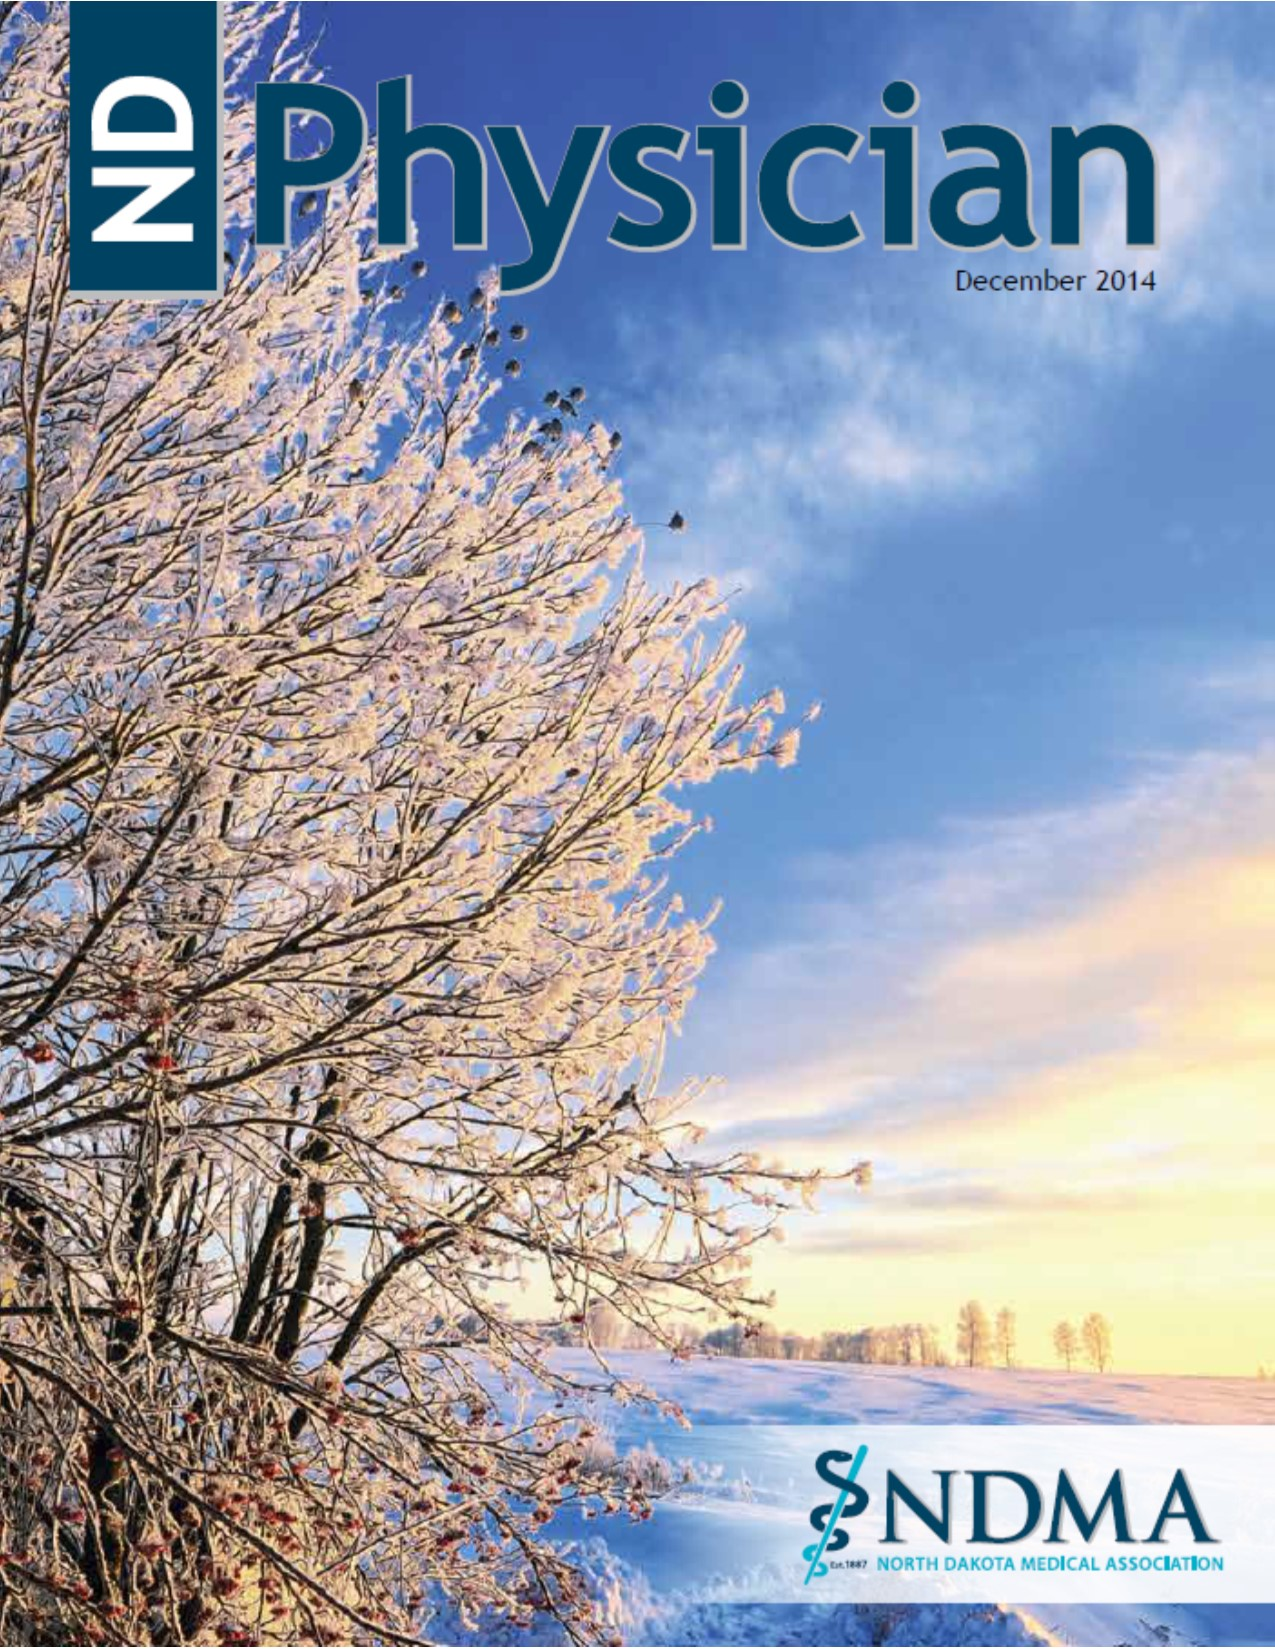 ND Physician December 2014 magazine cover